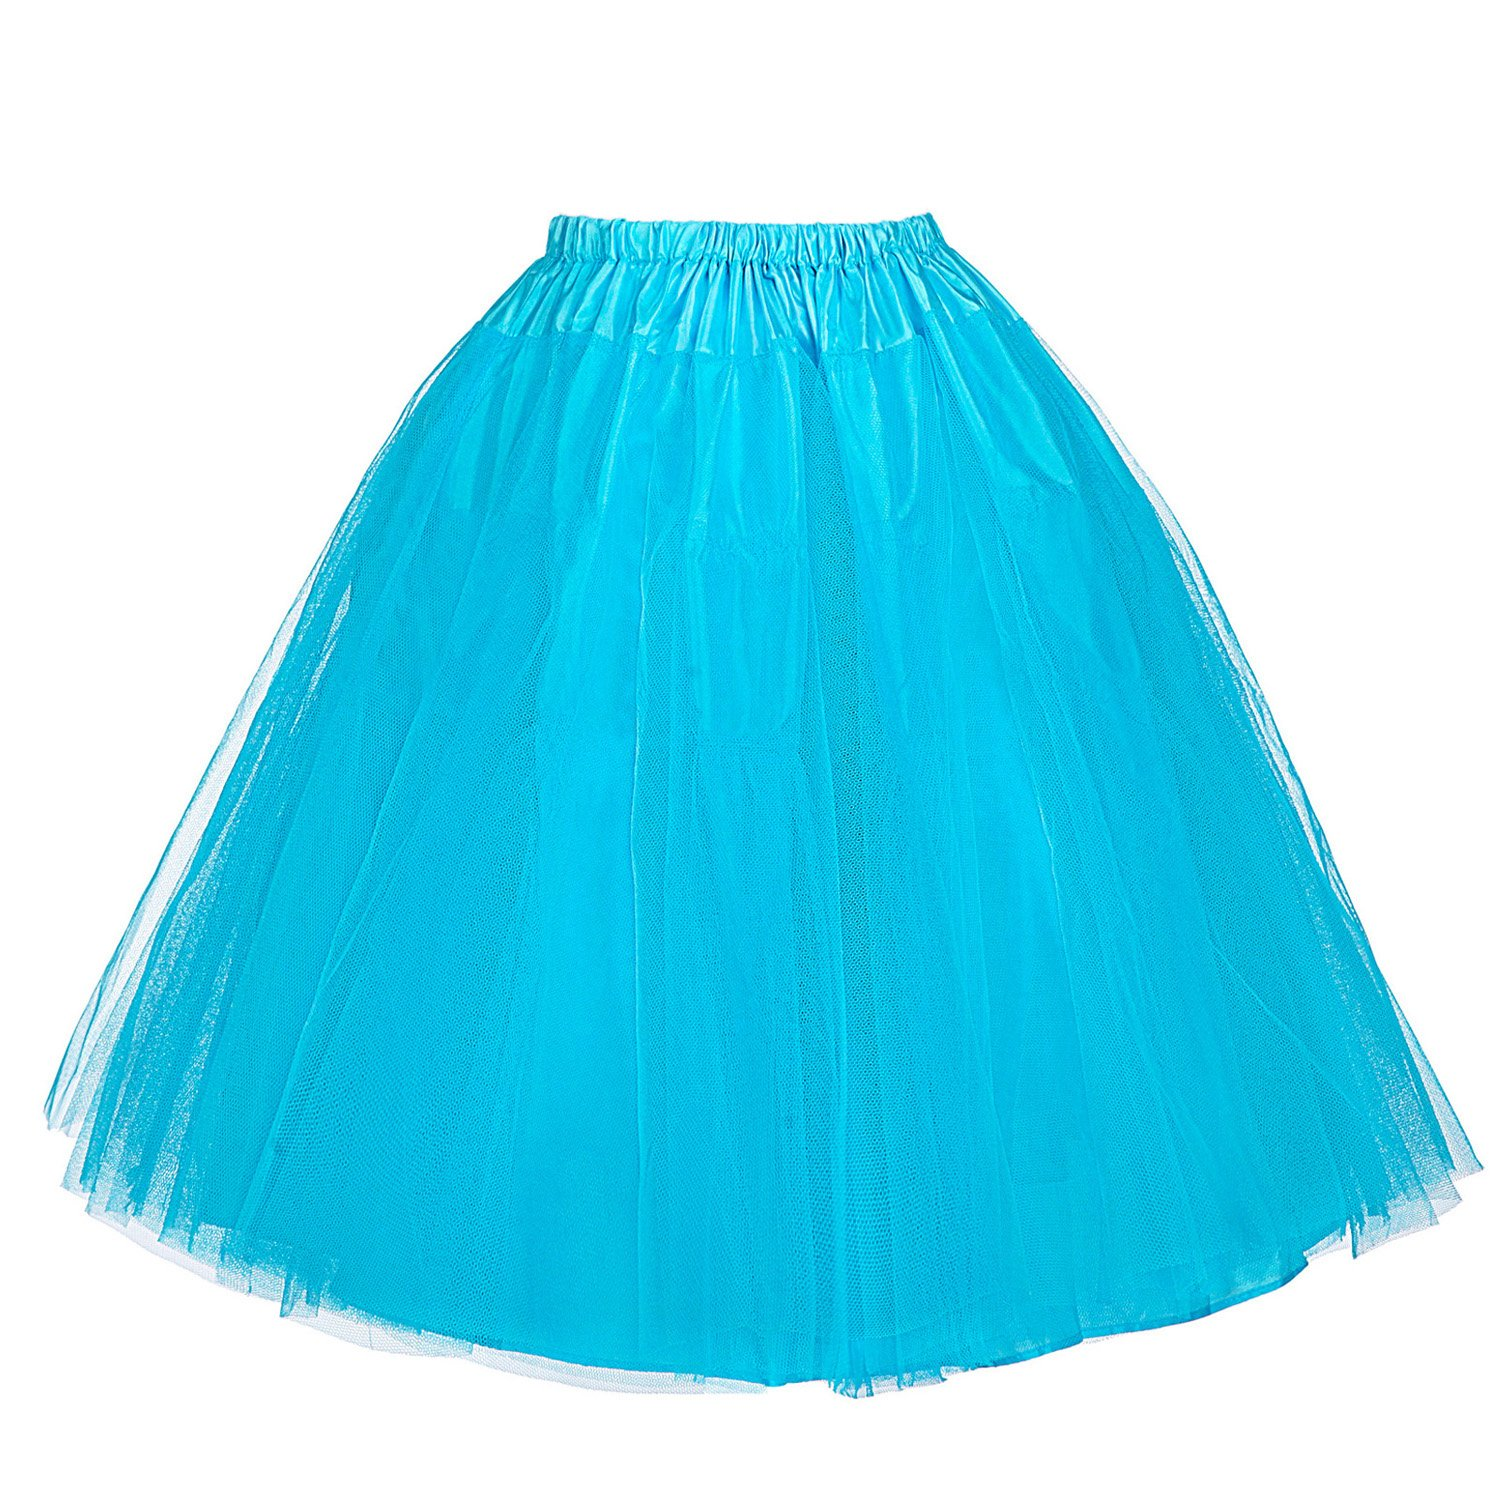 Belle Poque Retro Vintage Swing Dress Crinoline Petticoat Underskirt Skirts Multicolor